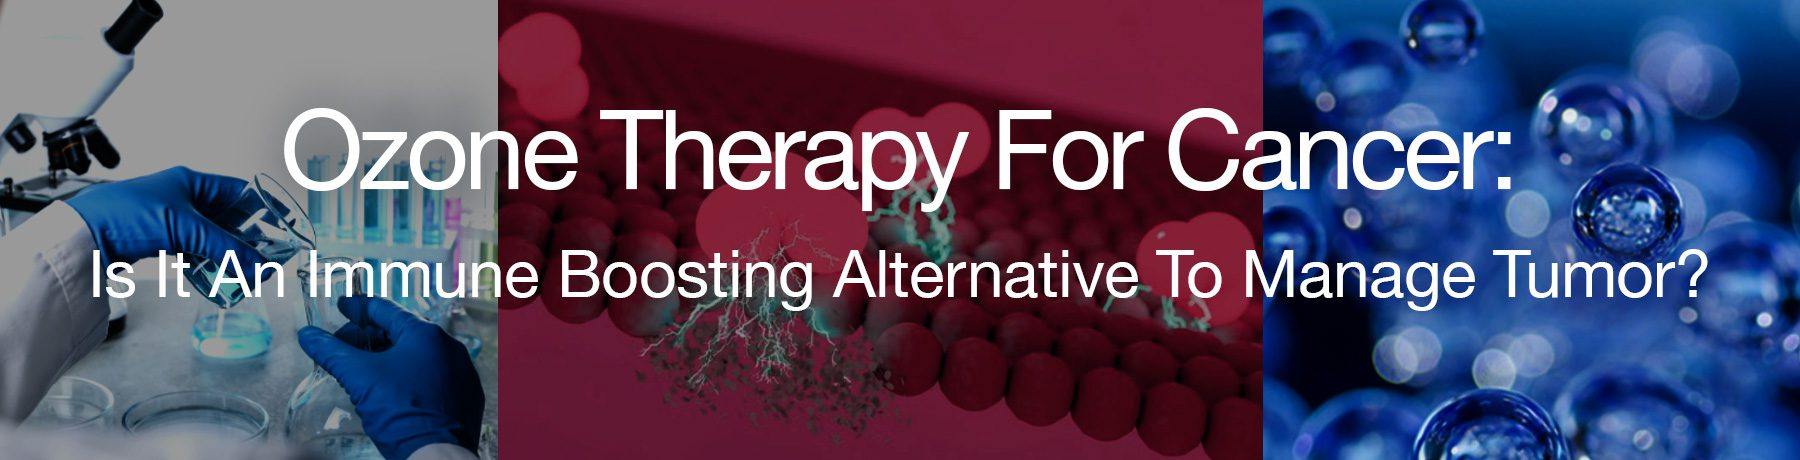 Ozone therapy for cancer treatment